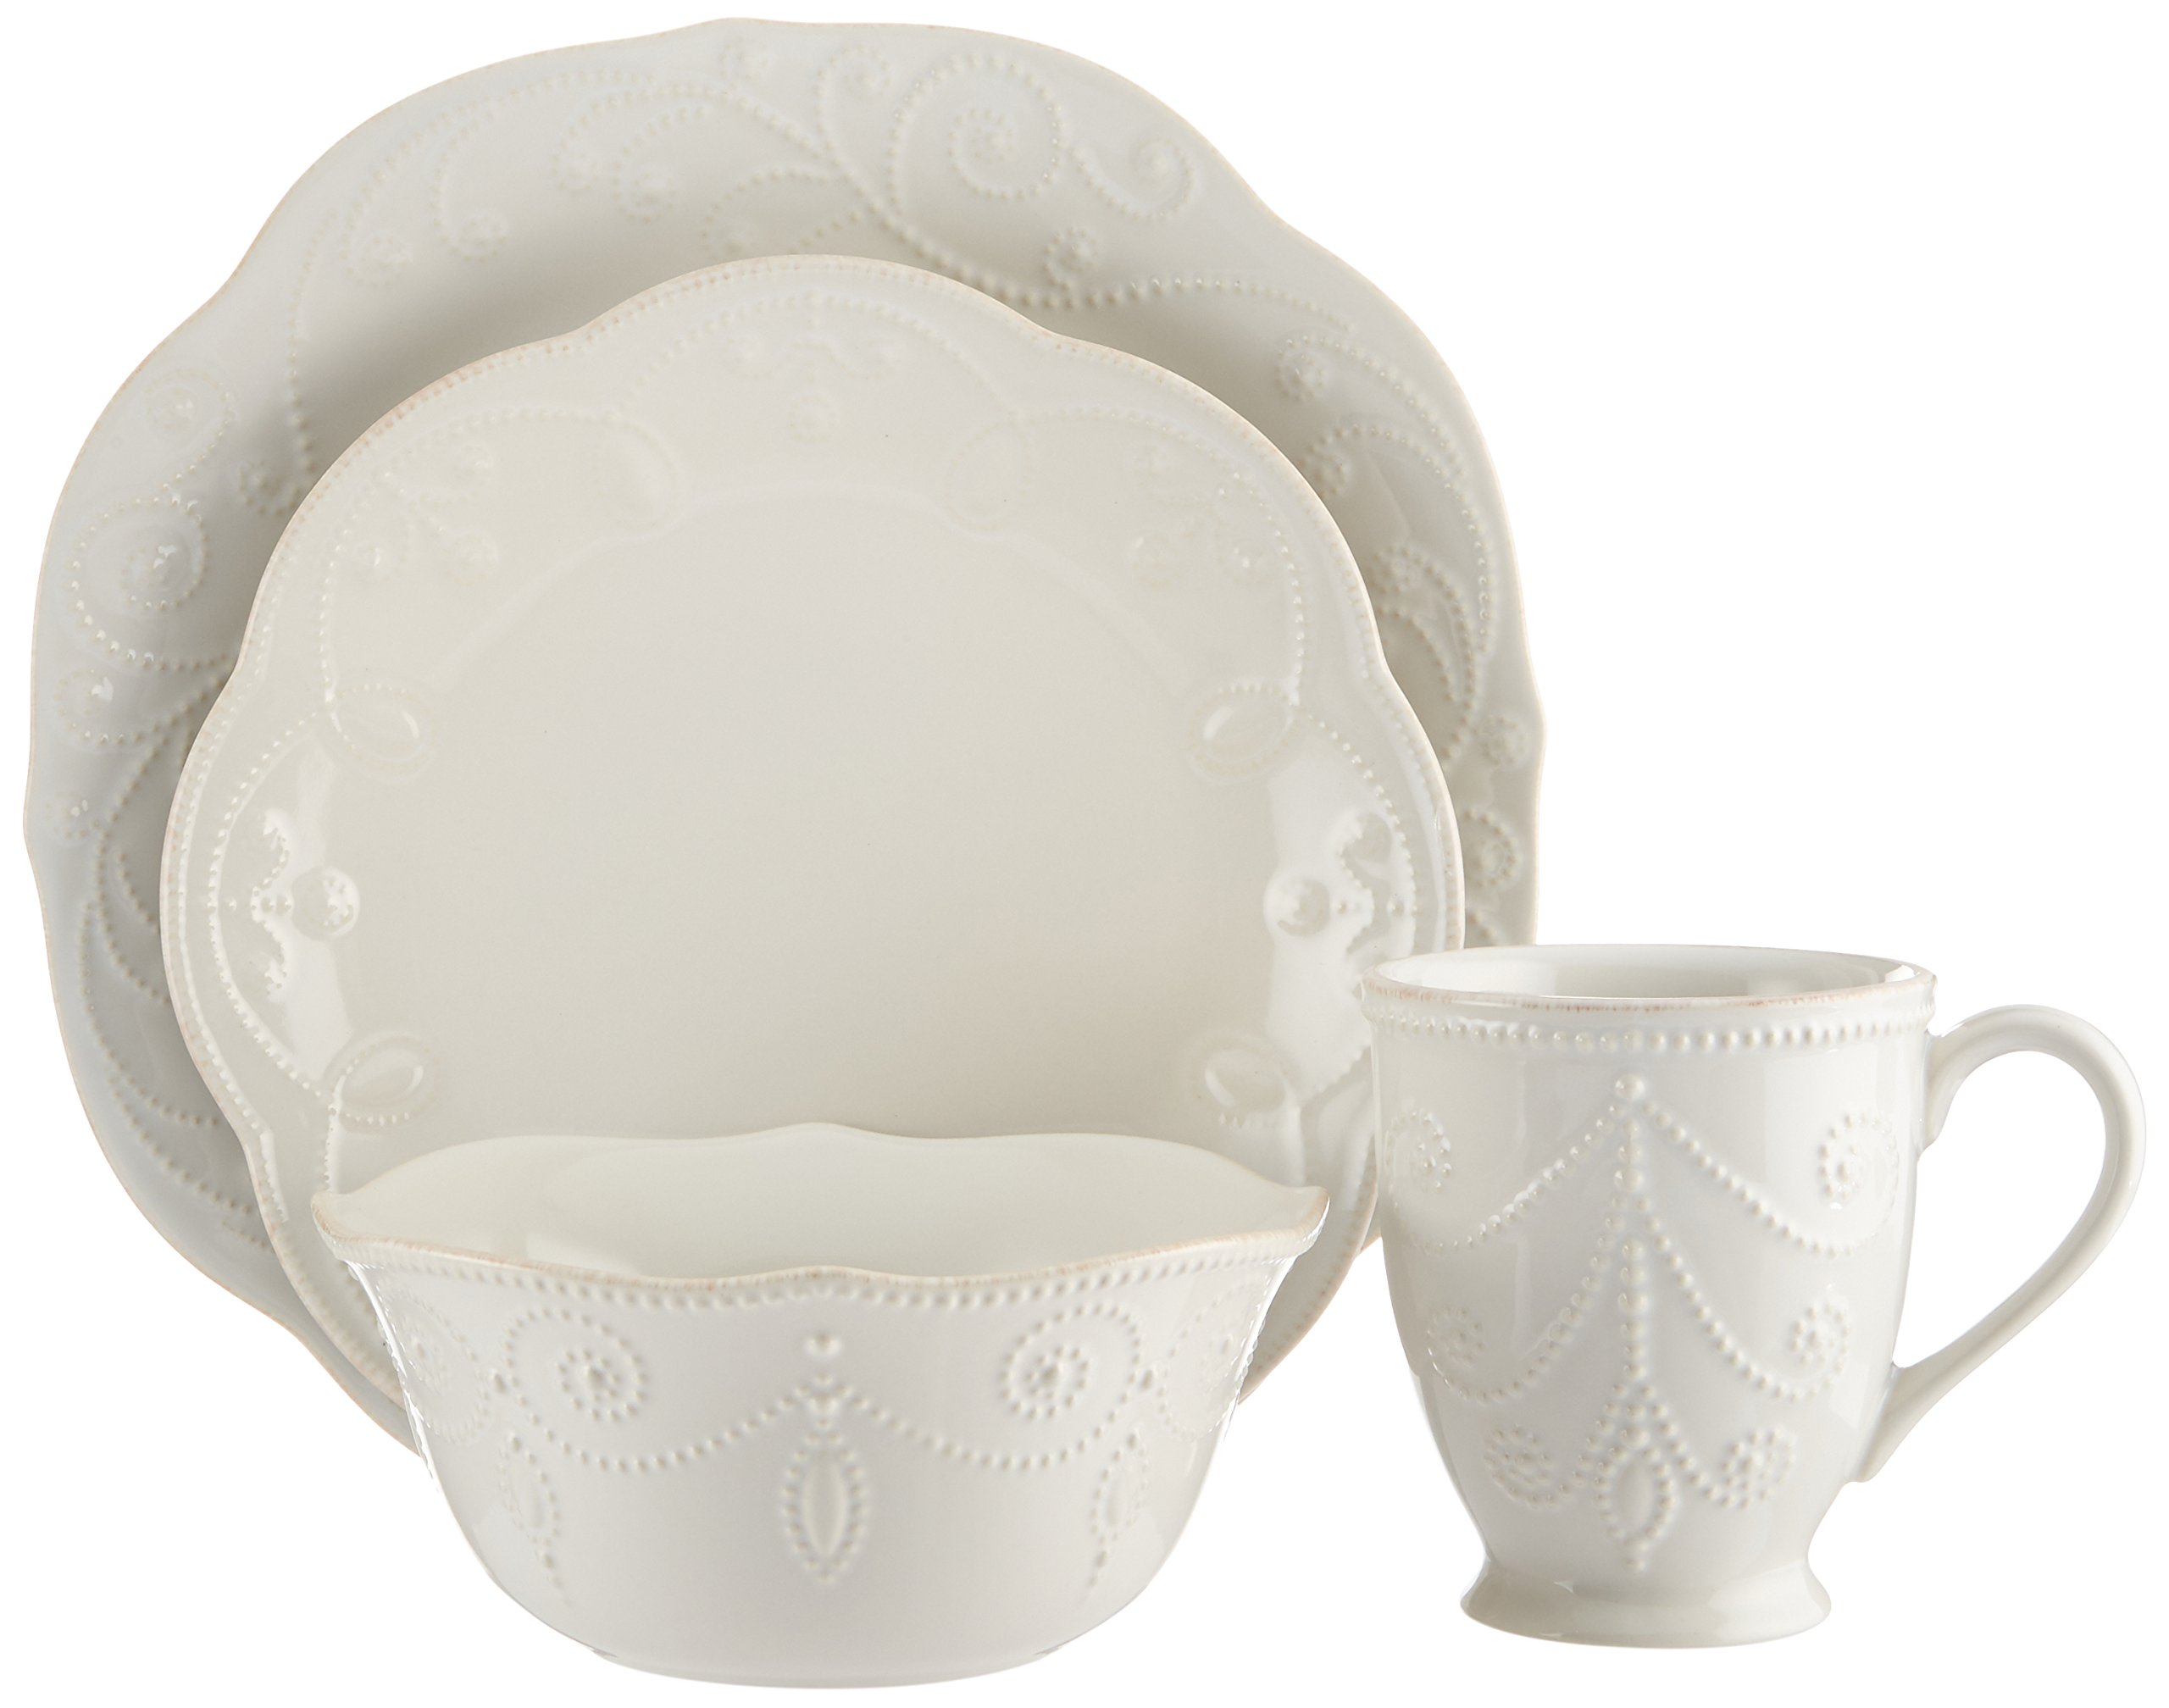 Lenox French Perle 4-Piece Place Setting, White - 822967 by Lenox